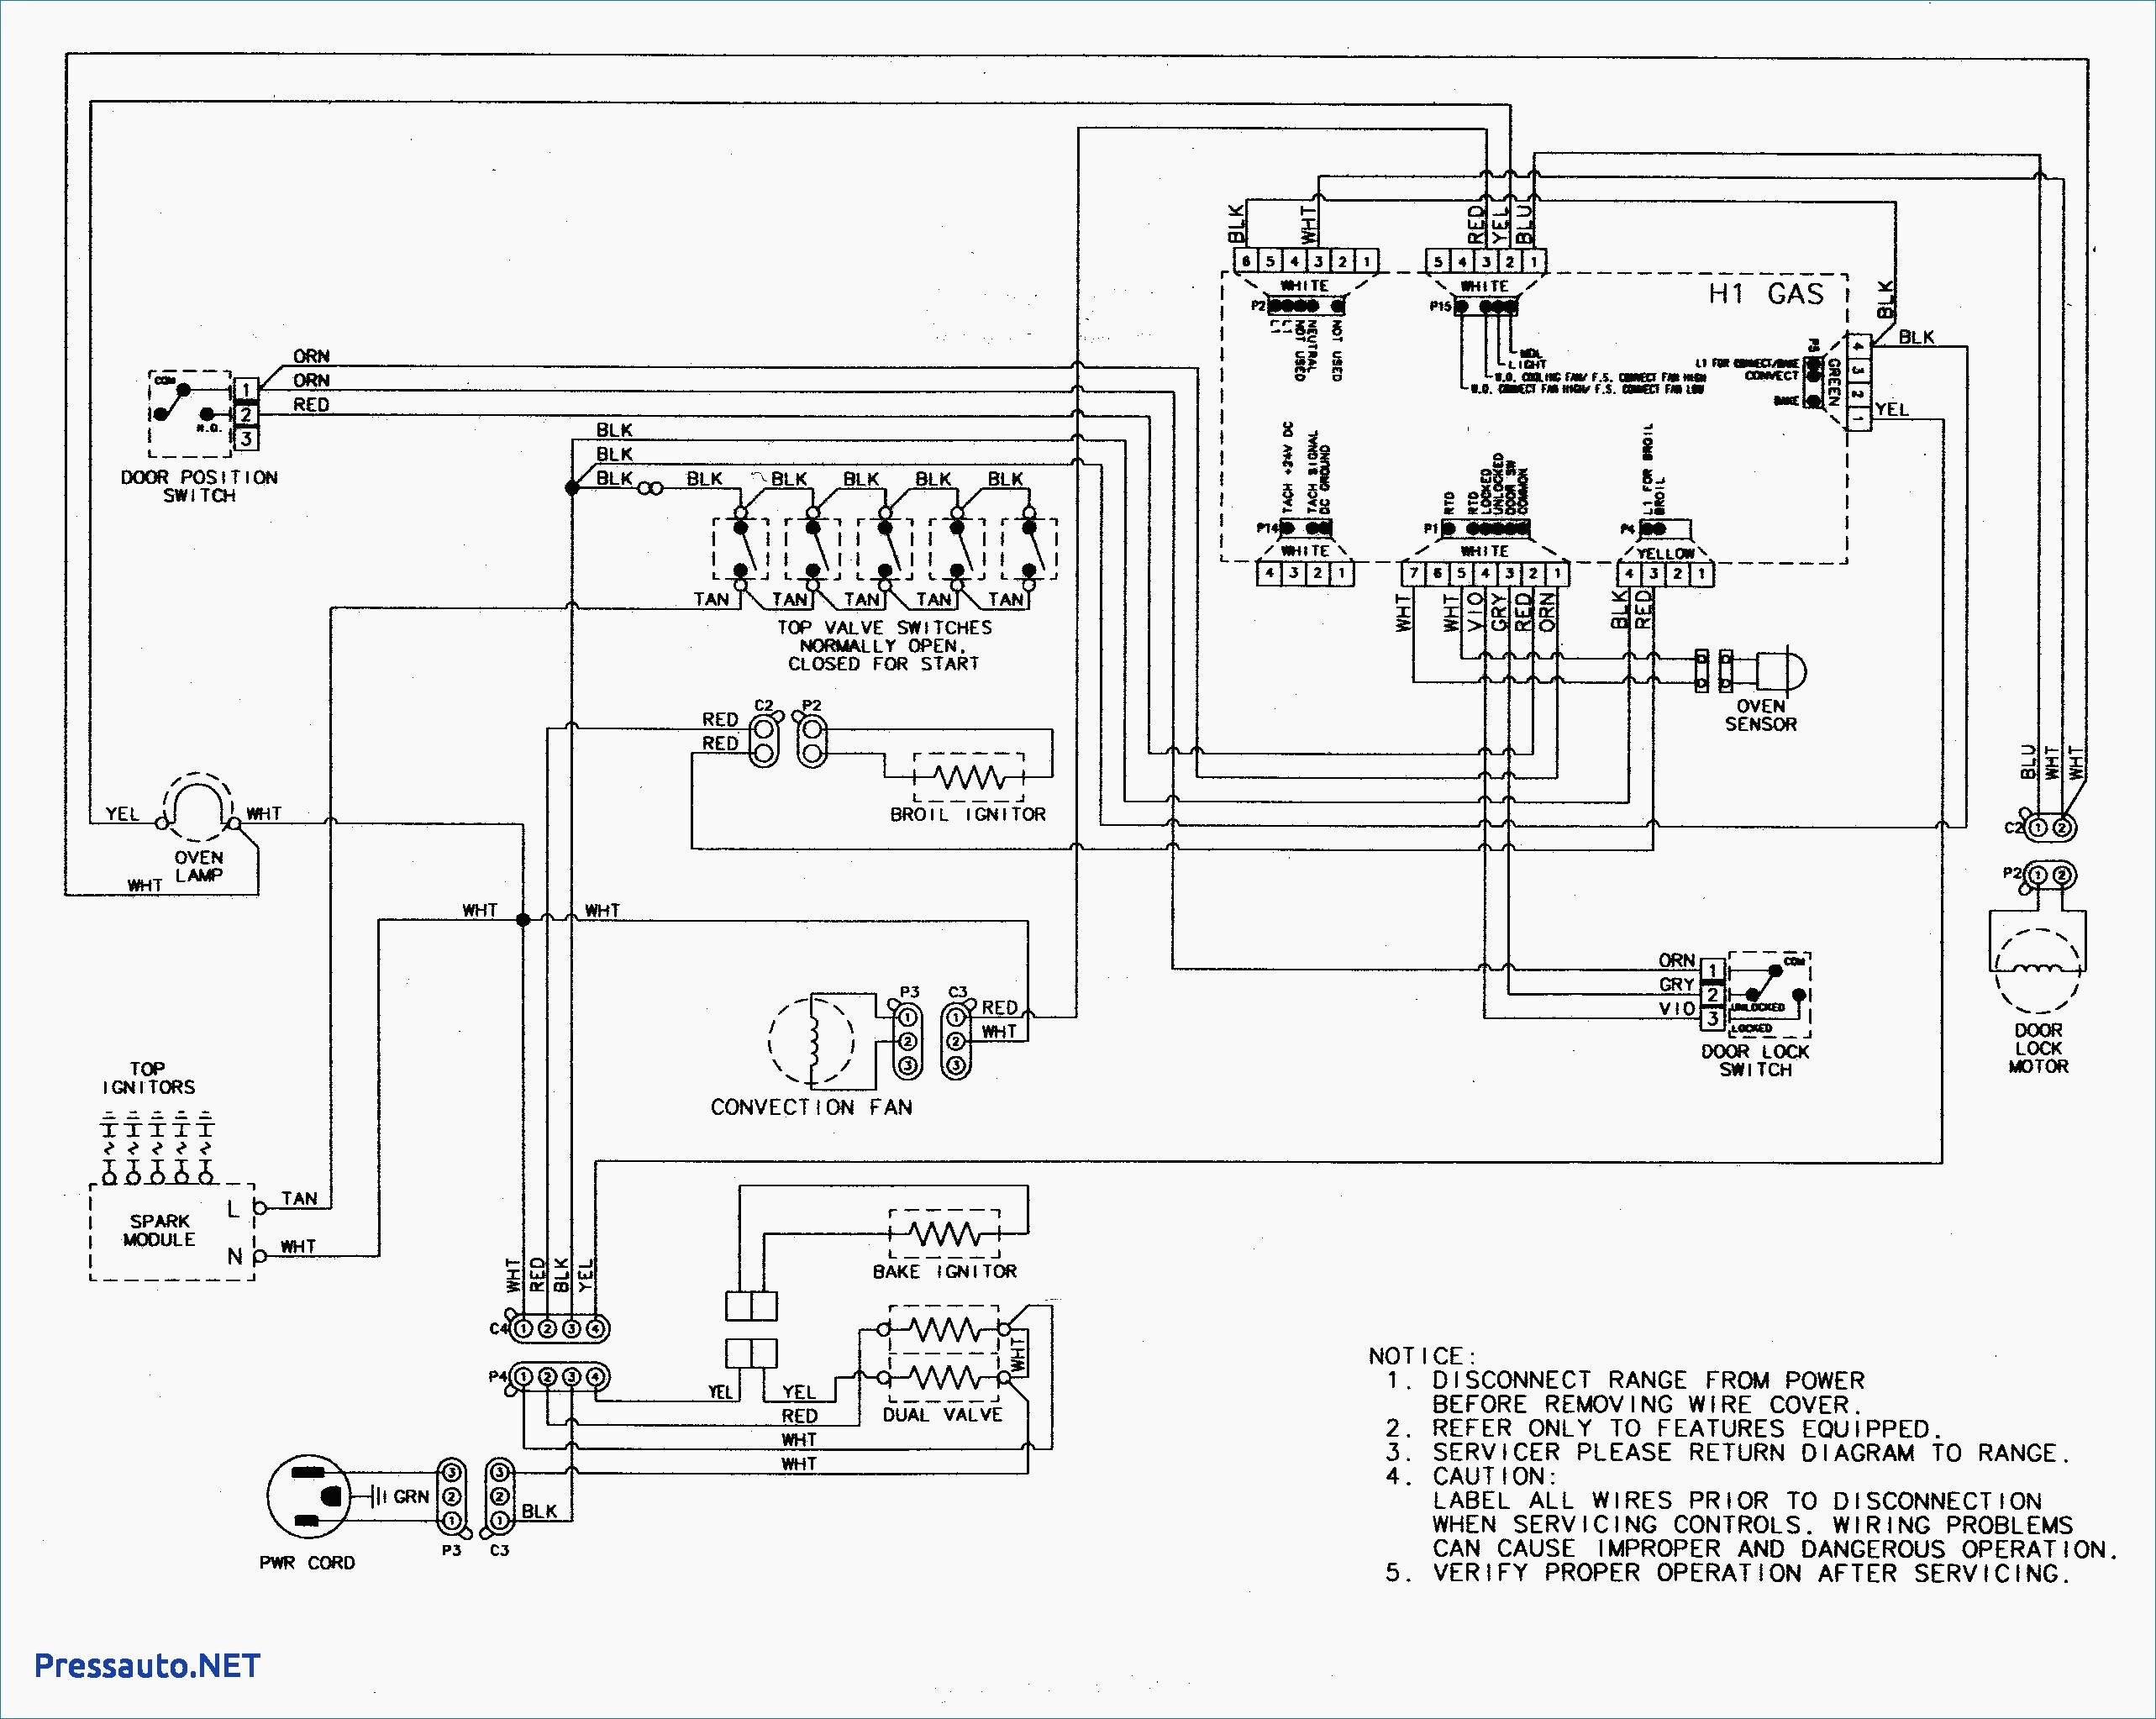 Hvac Fan Relay Wiring Diagram Hvac Fan Relay Wiring